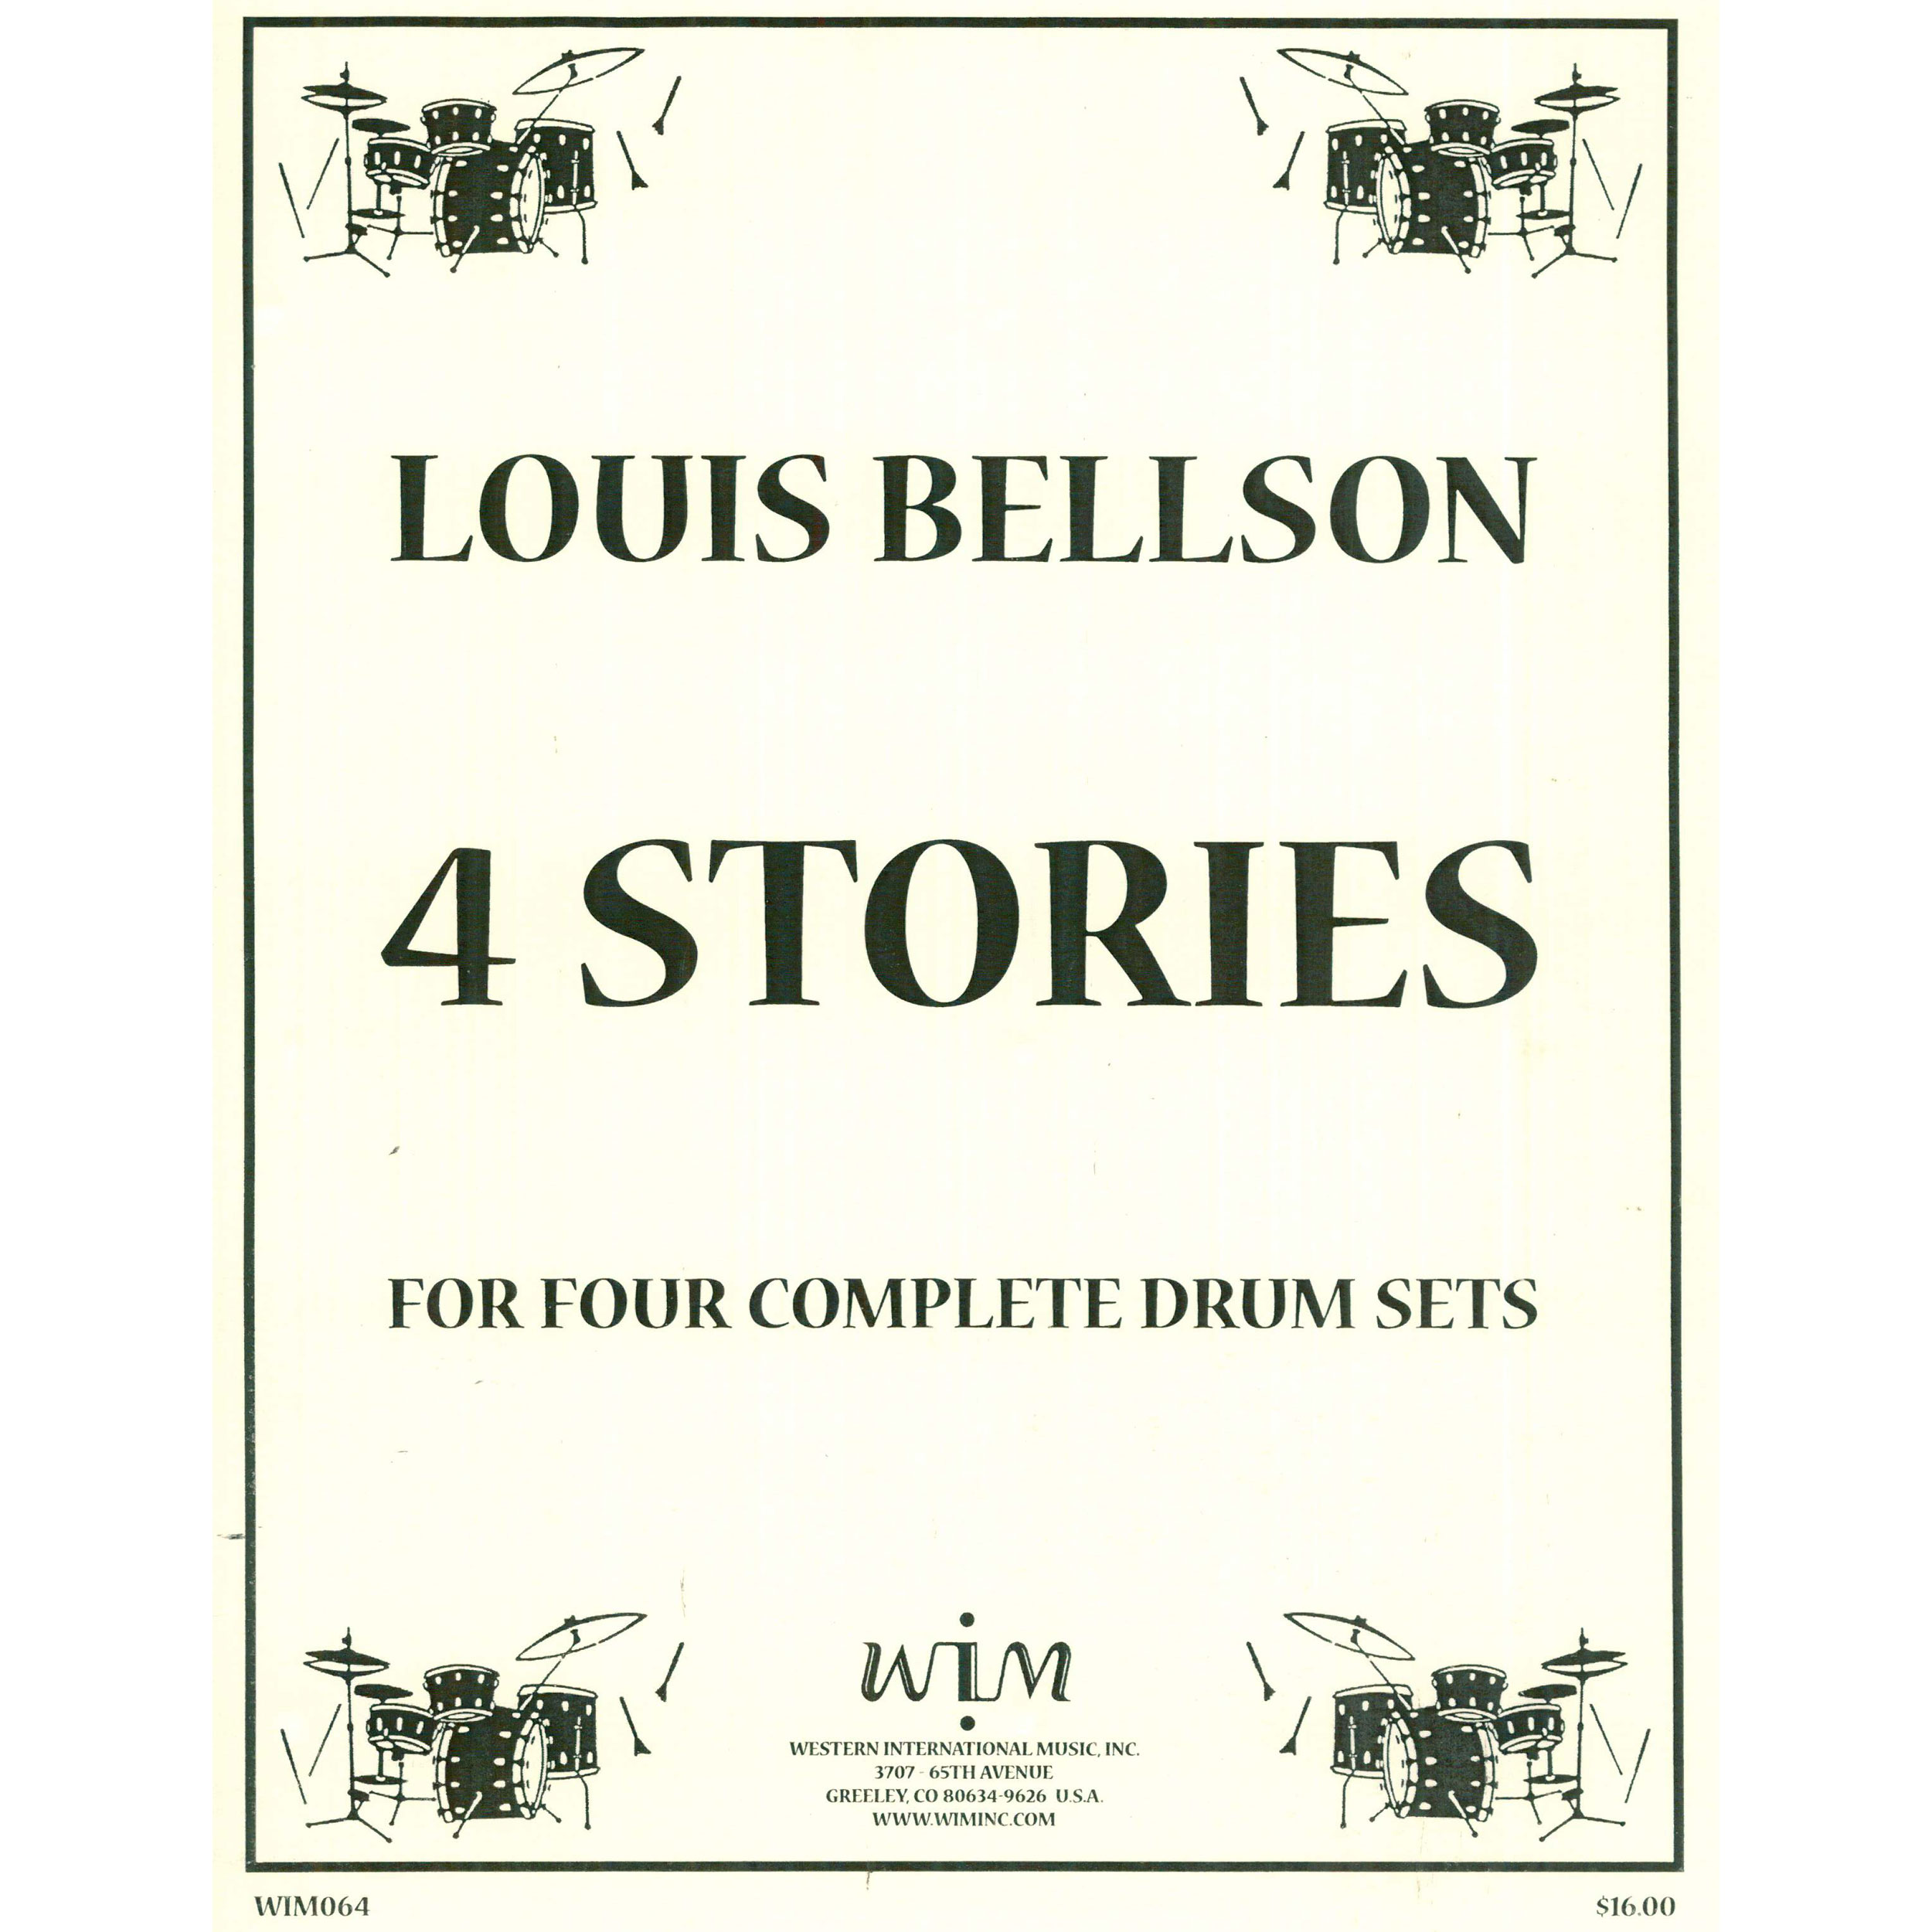 4 Stories (Four Stories) by Louis Bellson